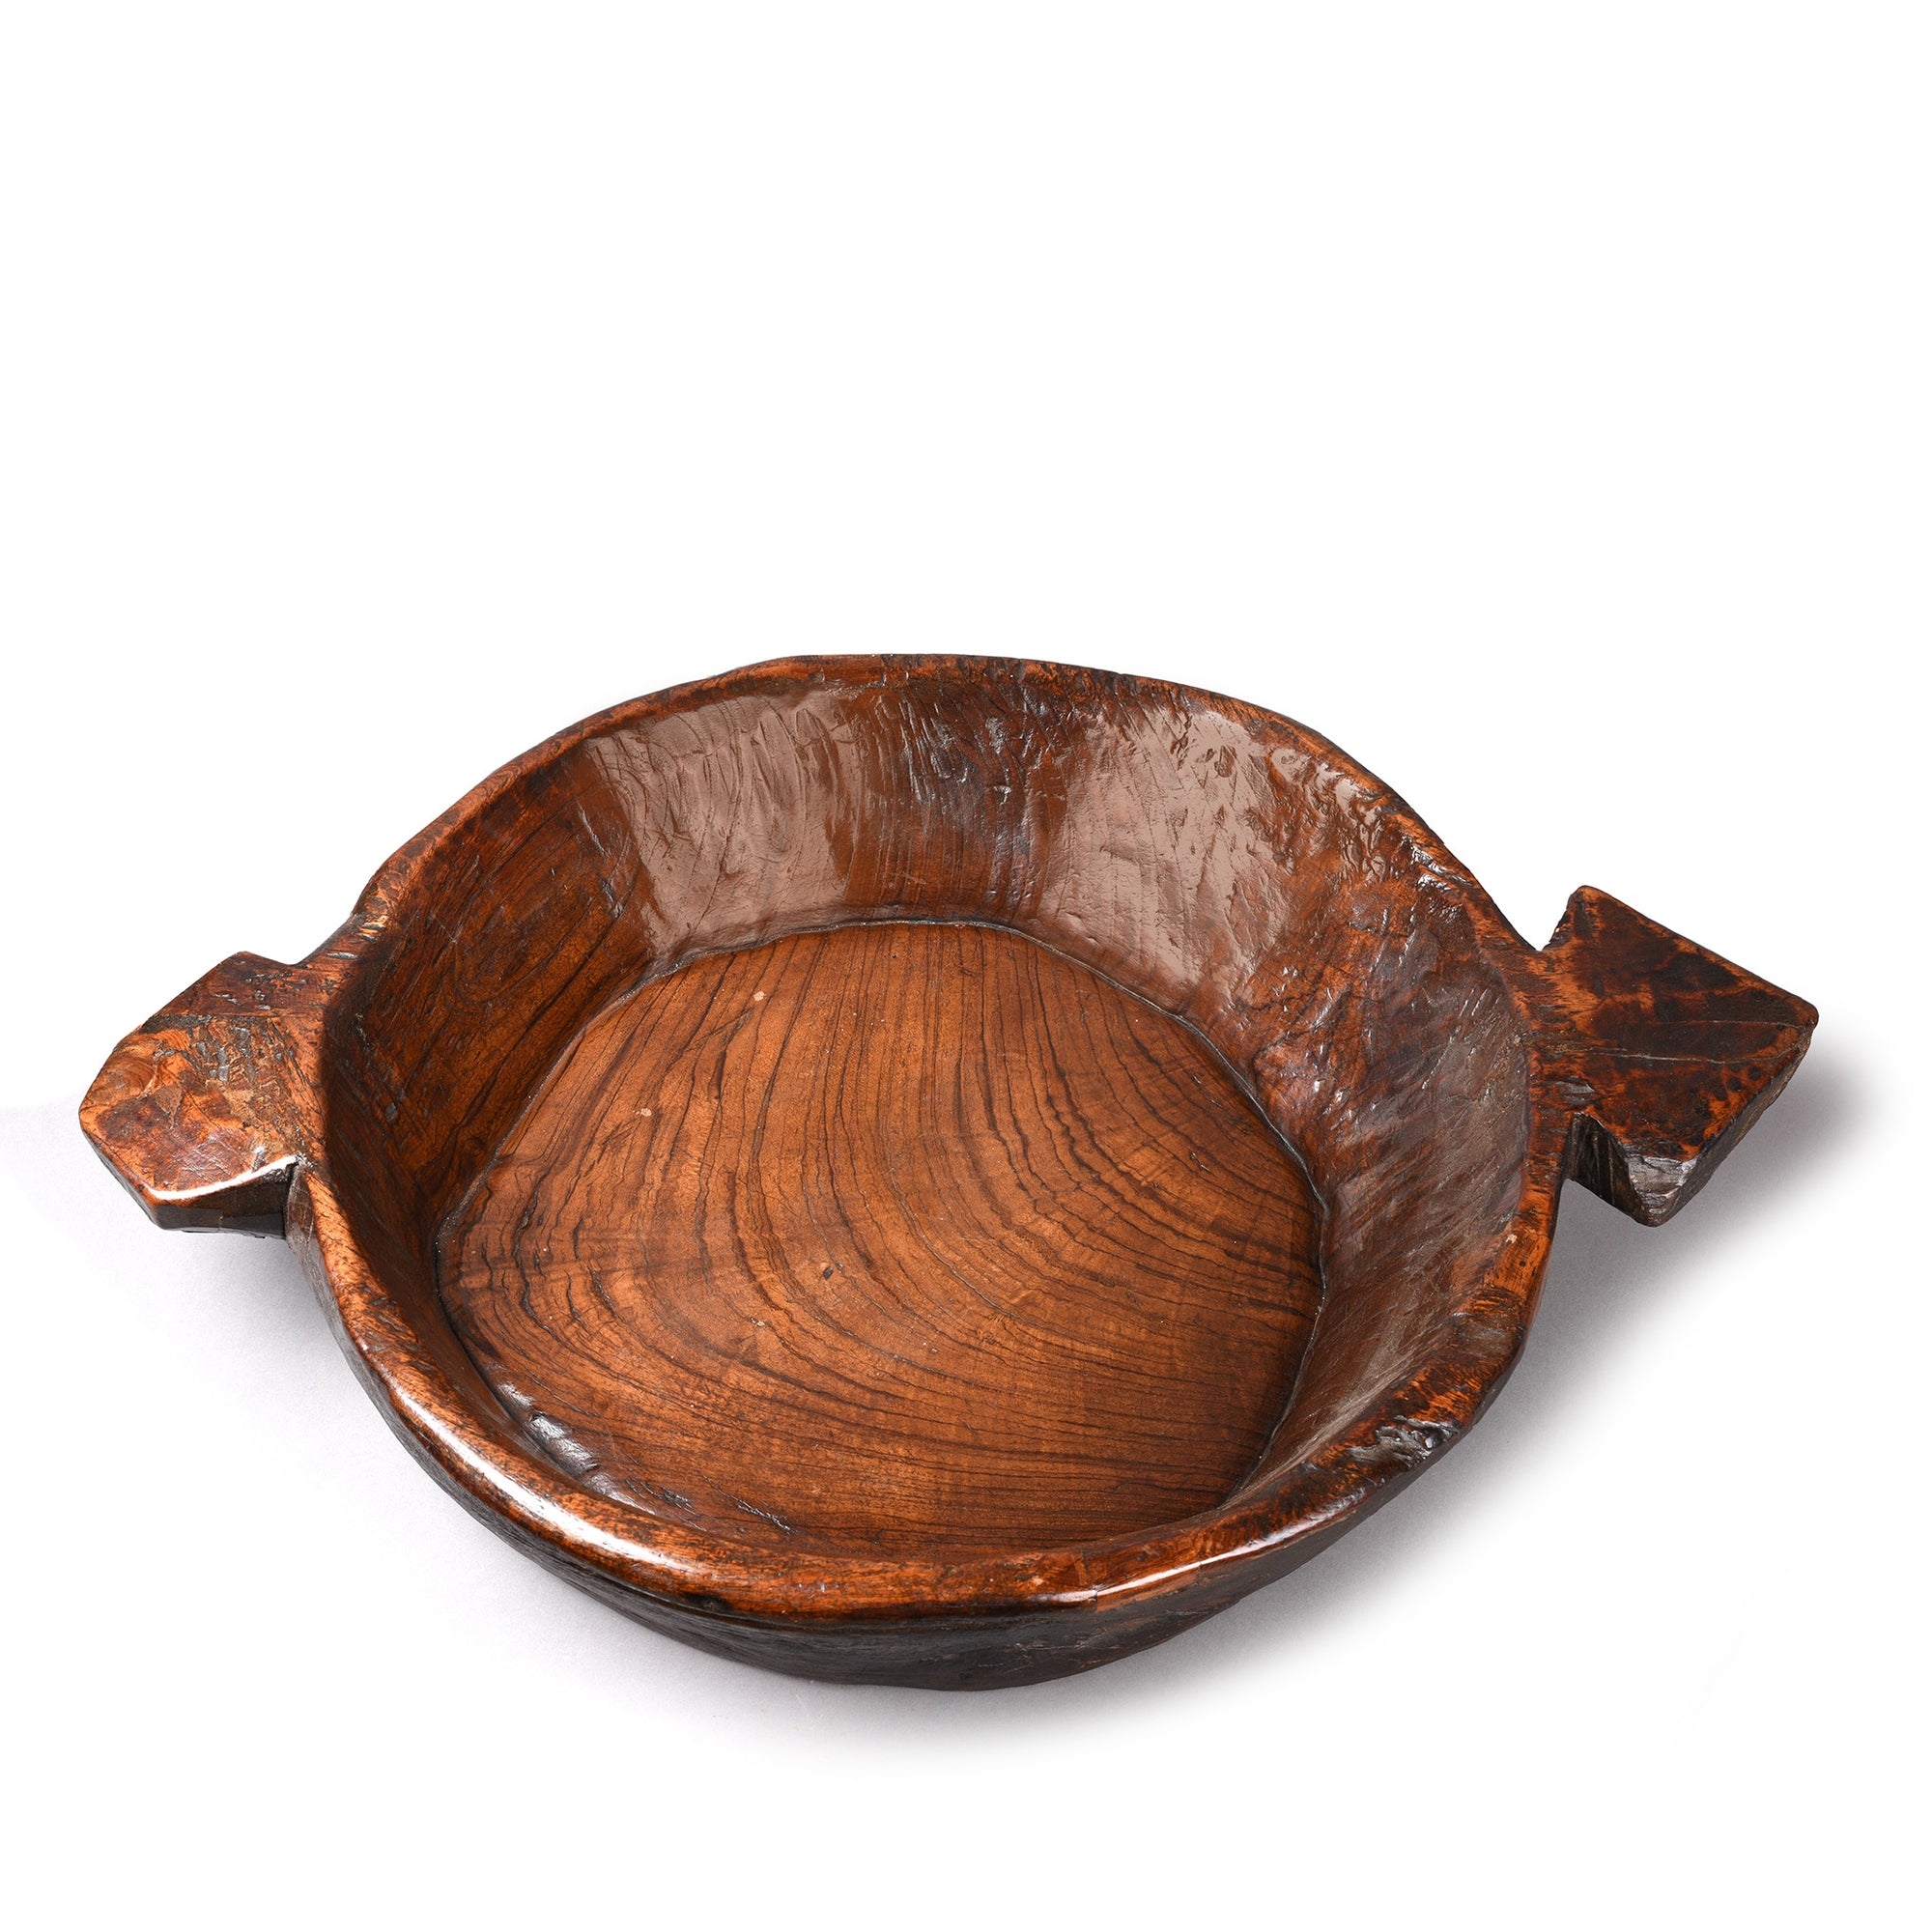 Teakwood Parath- Dough Mixing Bowl - 19thC from Rajasthan - 74.5 x 55.5 x 14 (wxdxh cms) - A5579